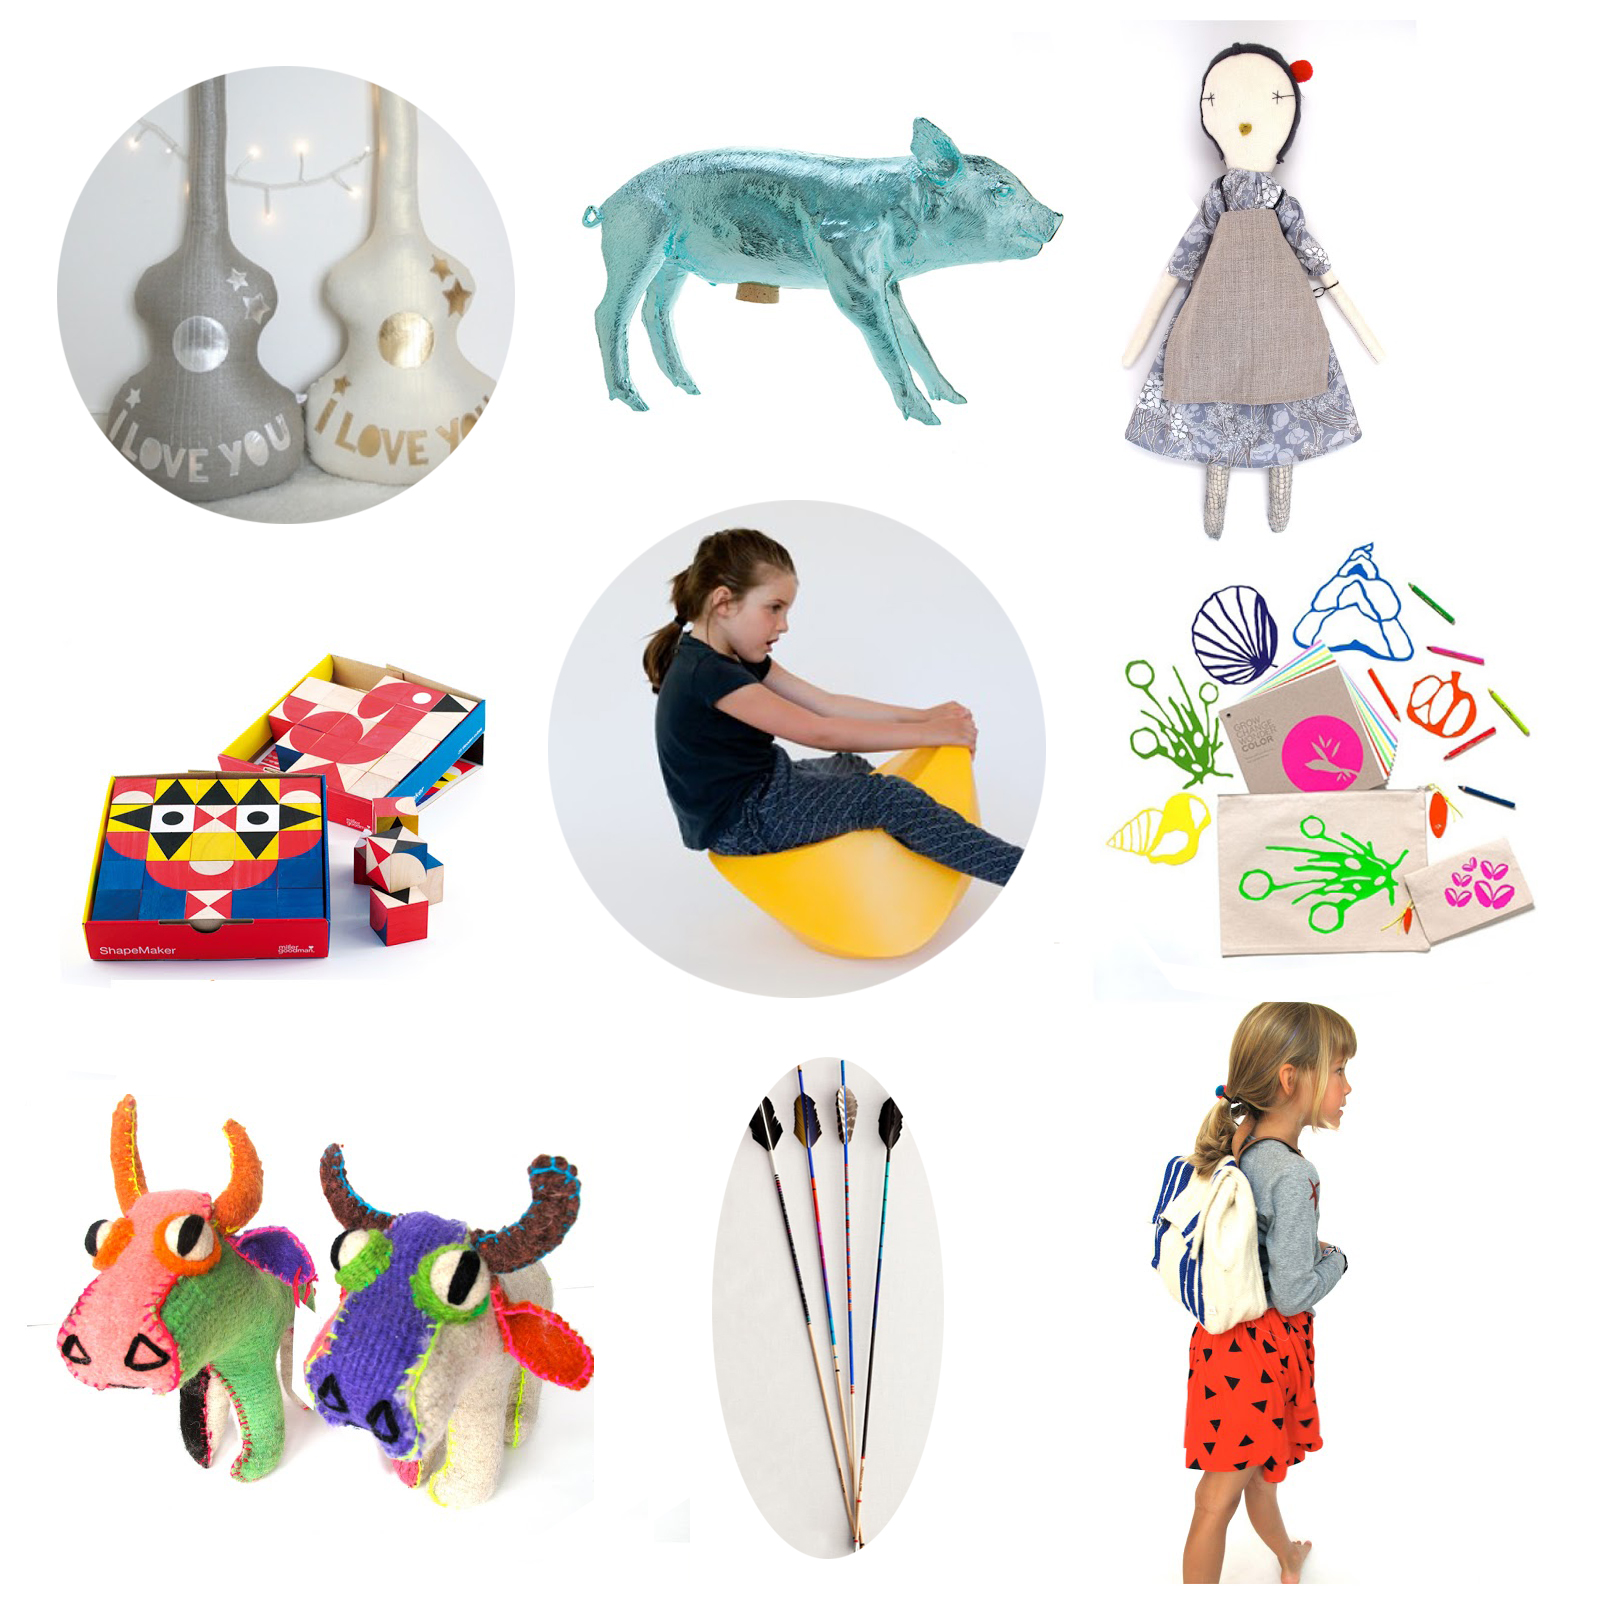 Last MInute GIft Guide from Nonchalant Mom for Modern Kids Design Toys